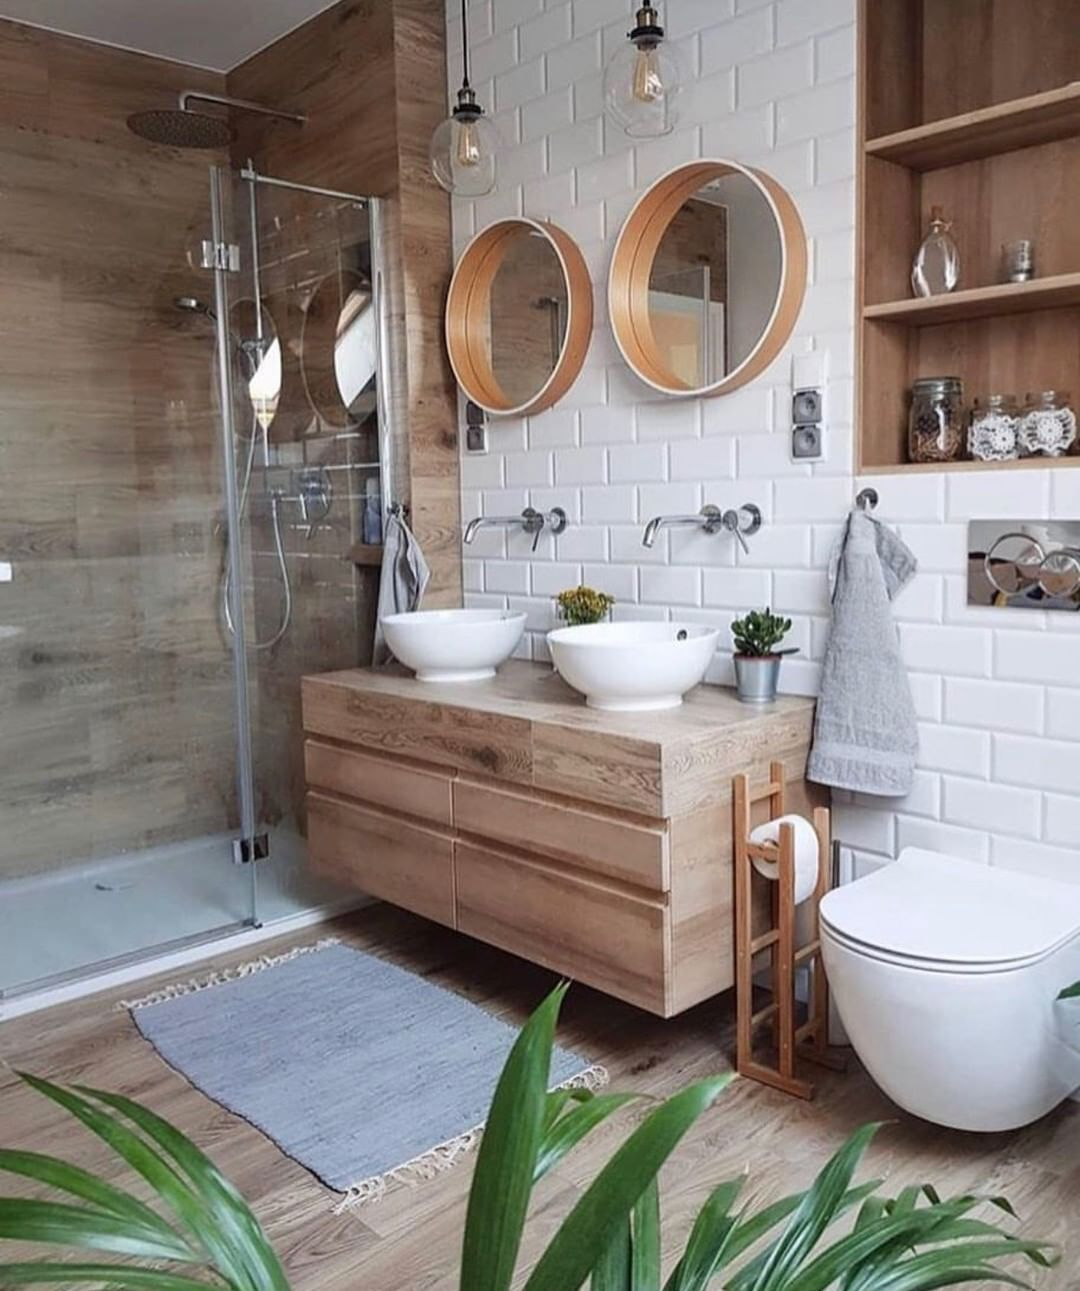 Chamberlain Real Estate Group On Instagram Would You Love This Bathroom Photocred Interiordesign Ga Big Bathrooms Wooden Vanity Unit Bright Bathroom